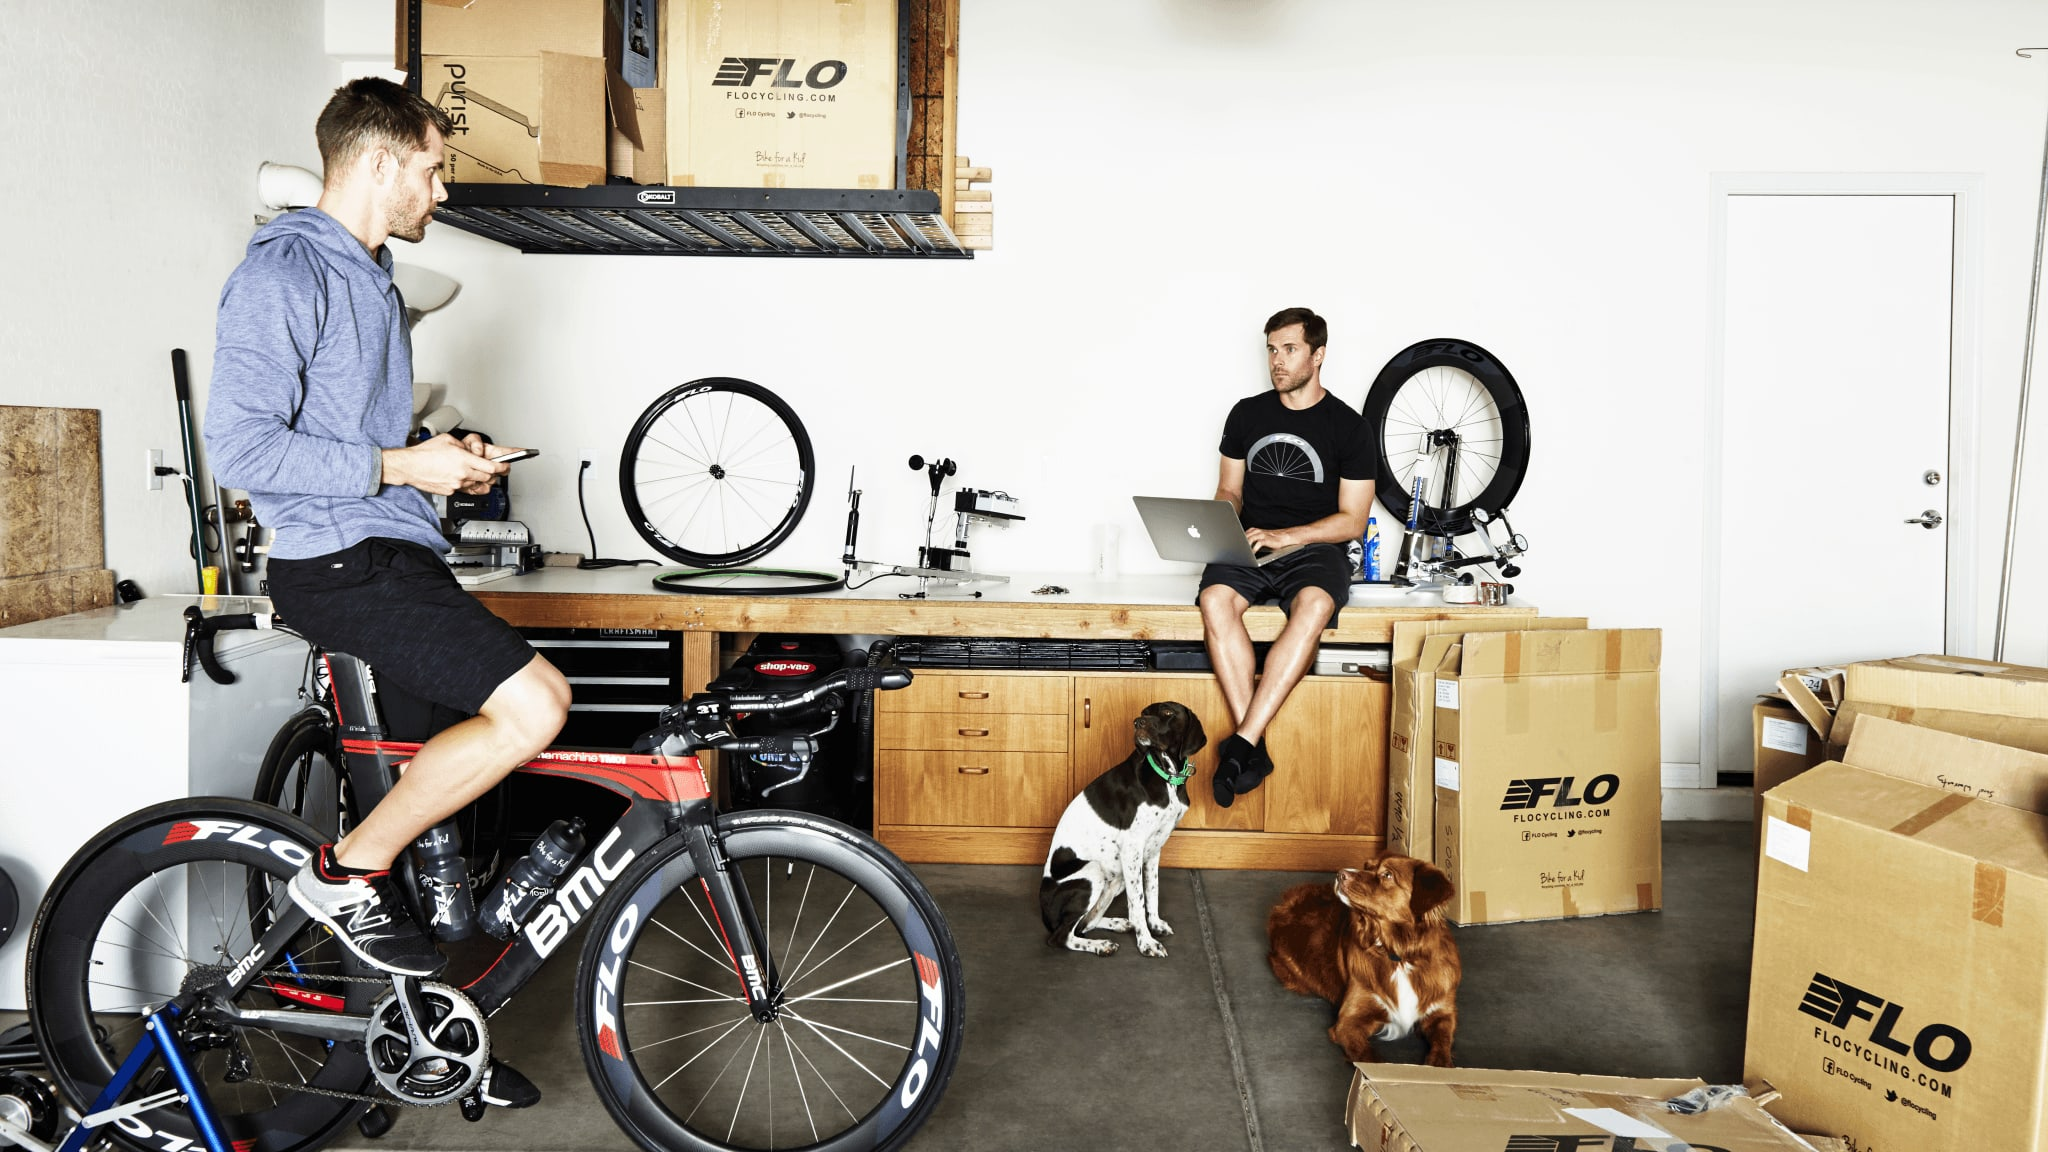 The Brothers Behind Flo Cycling: Jon and Chris Thornham